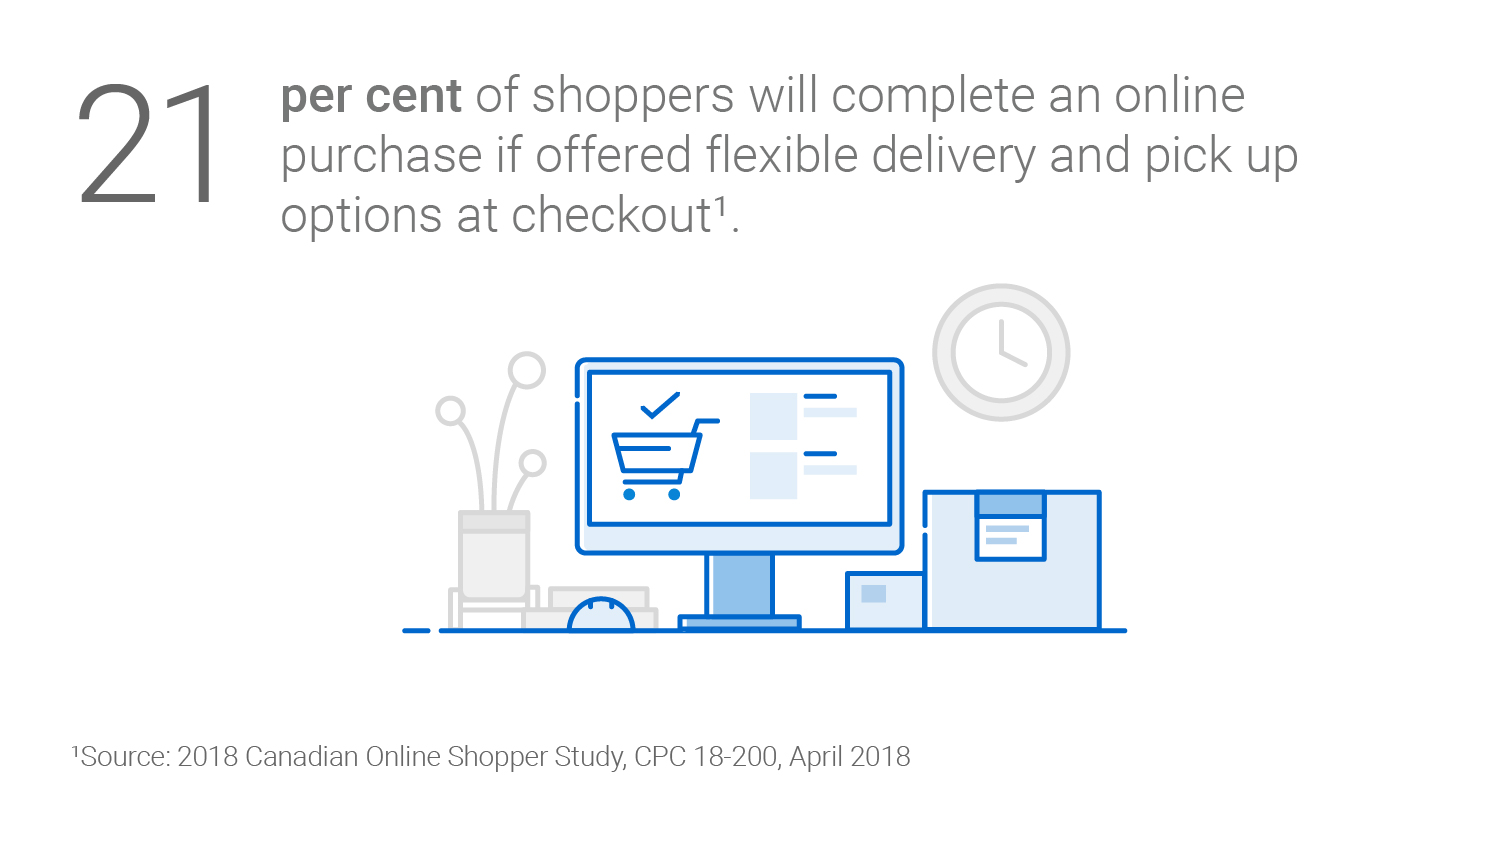 21 per cent of shoppers will complete an online purchase if offered flexible delivery and pickup options at checkout (2018 Canadian Online Shopper Study, CPC 18-200, April 2018).